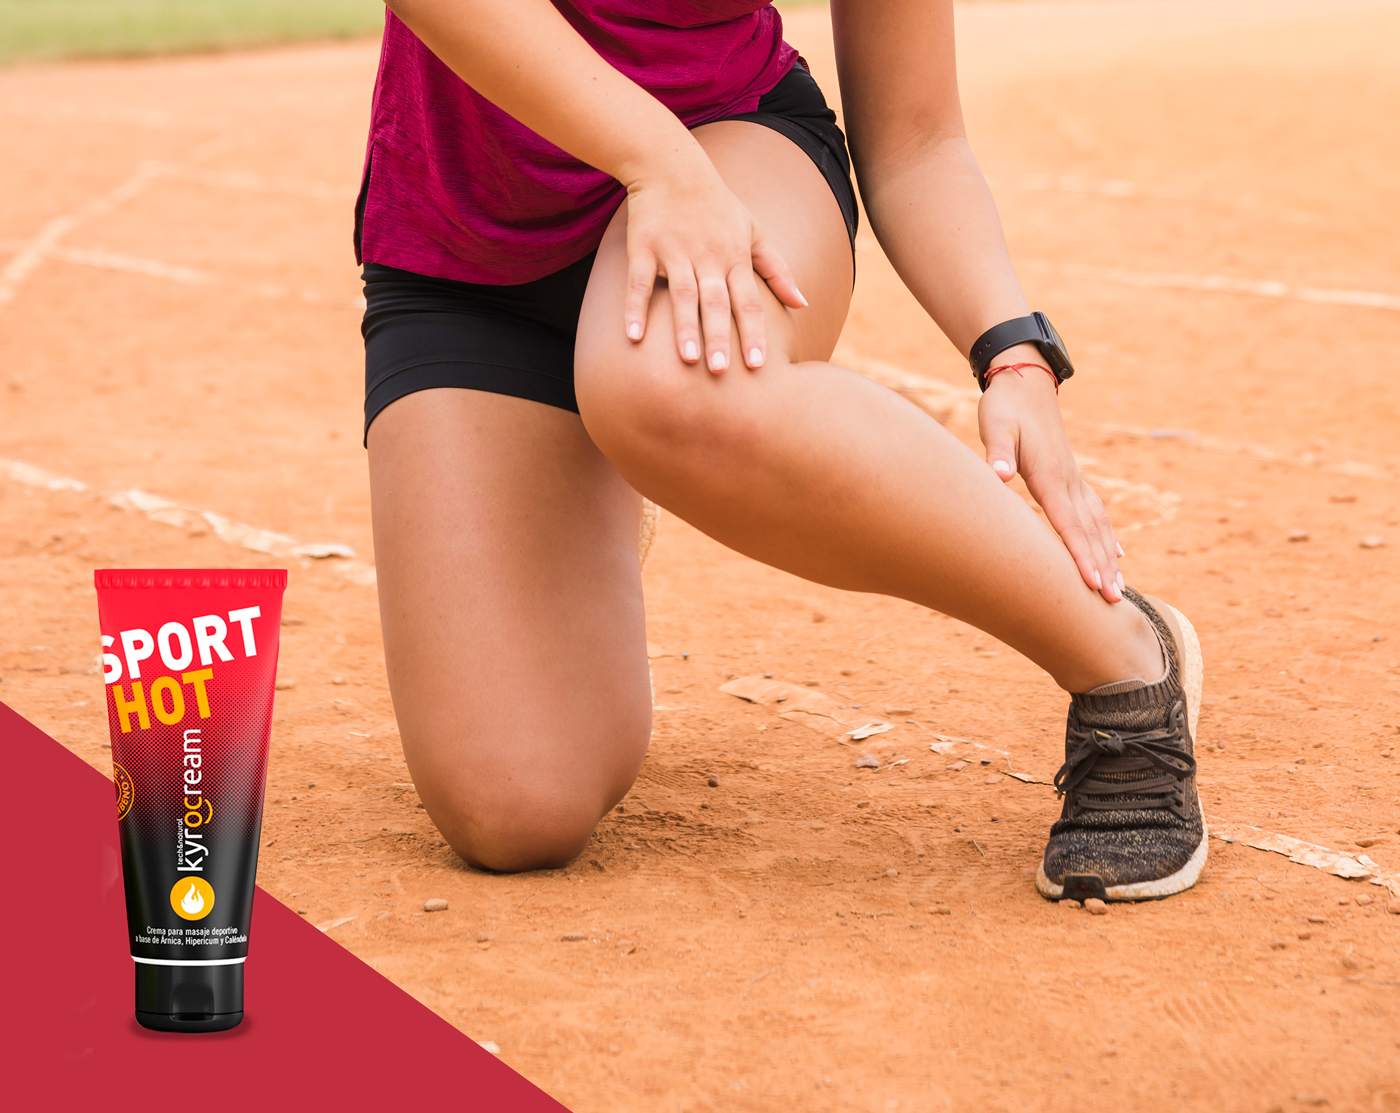 THE EFFECT OF THERMOTHERAPY ON KYROCREAM SPORT HOT